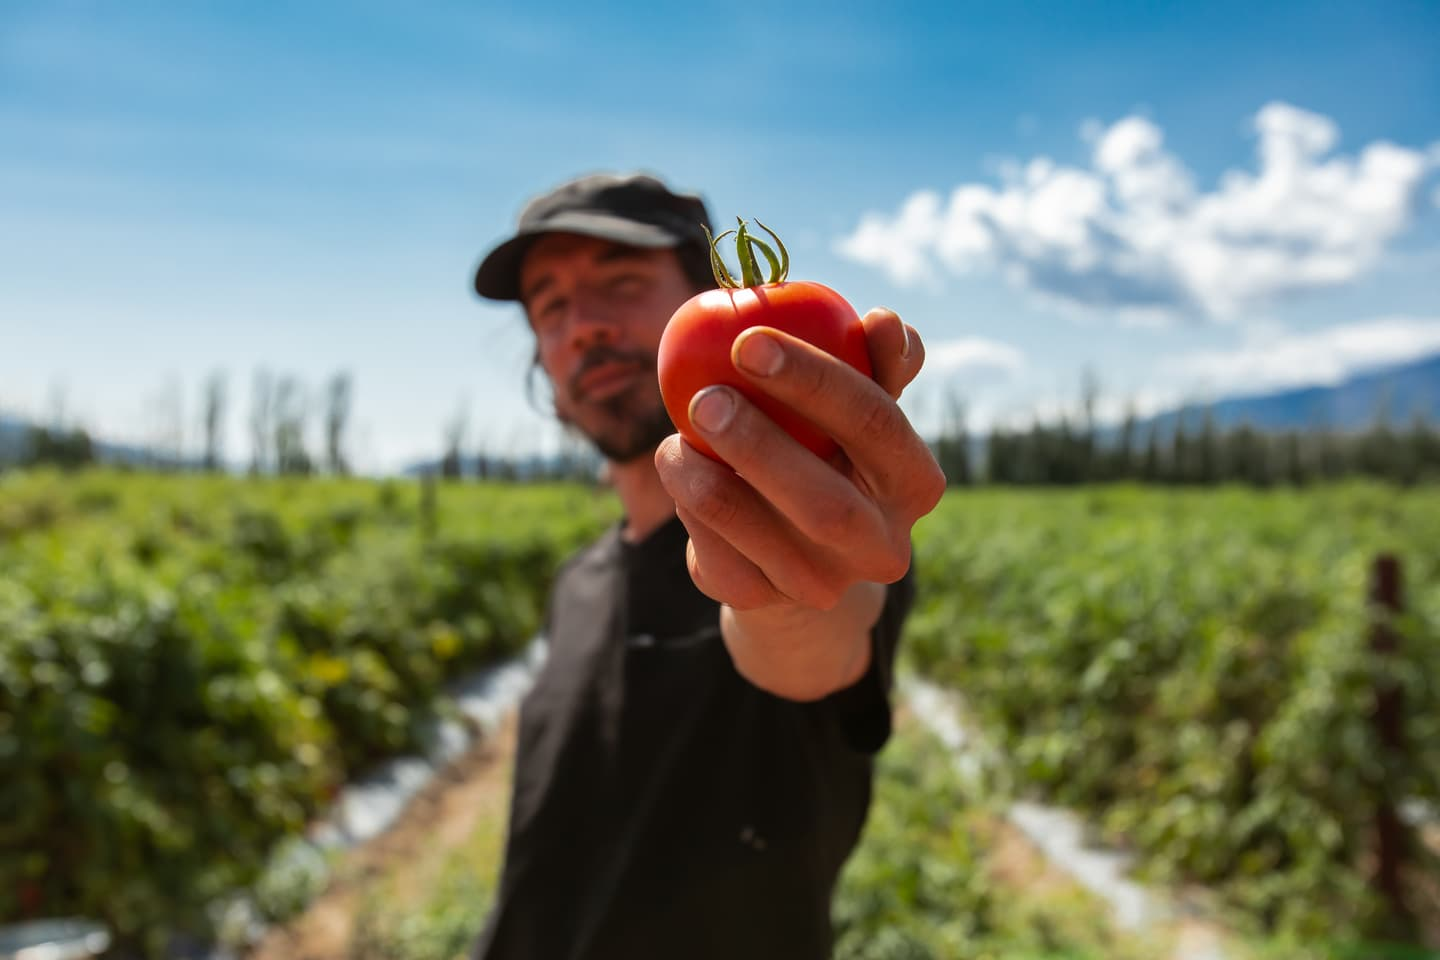 Canadian Farmer holding up a tomato